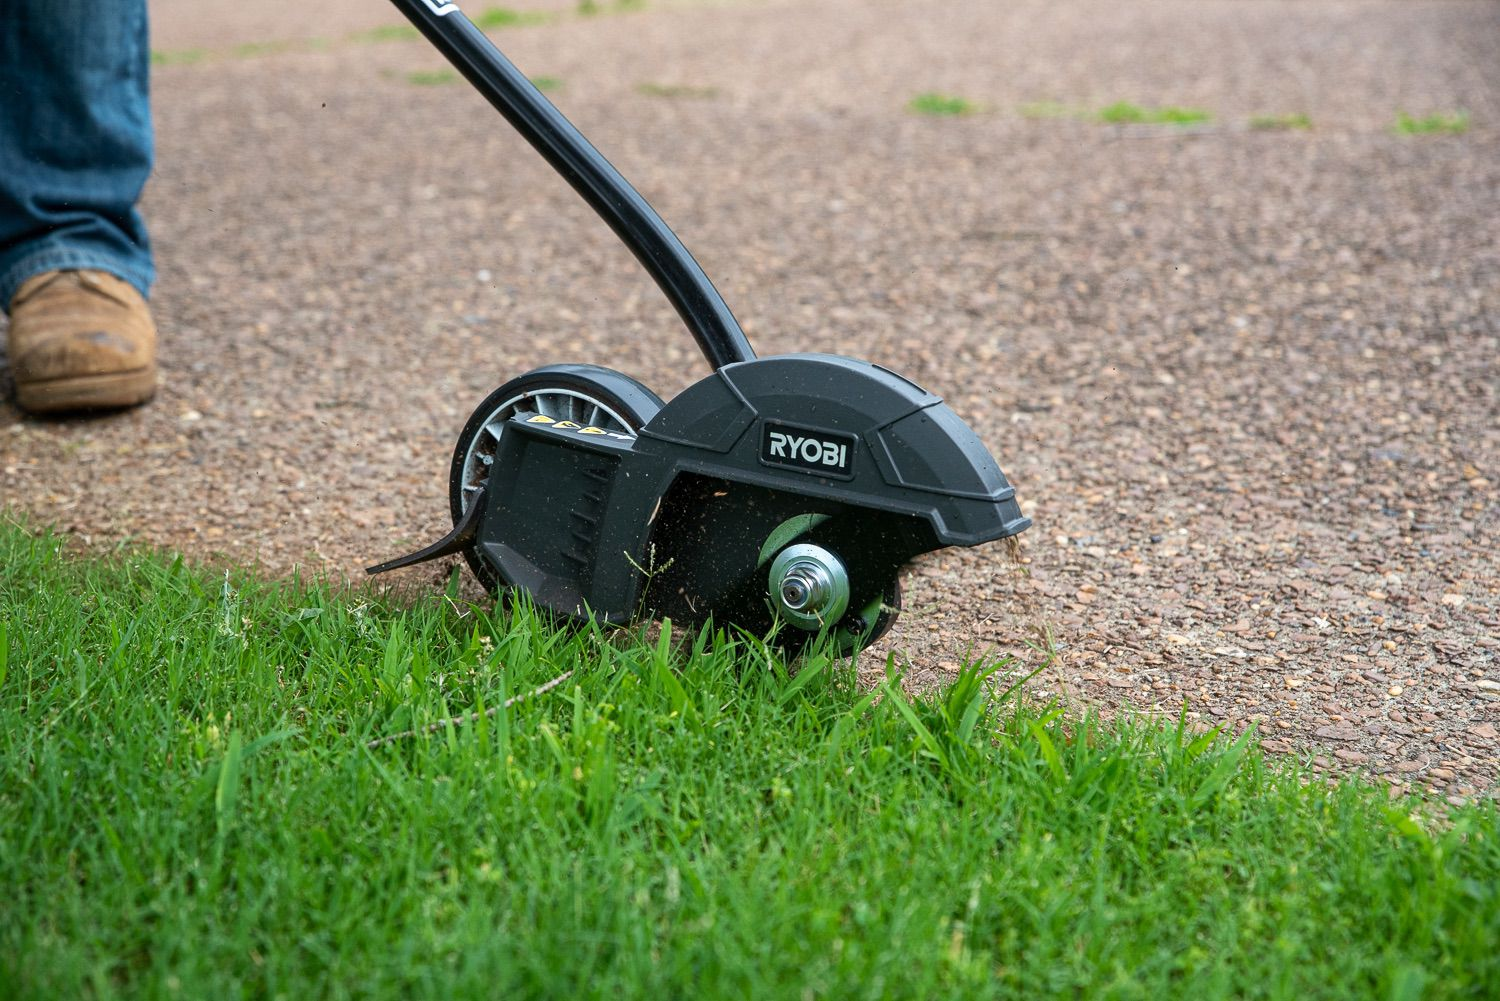 """Ryobi Expand-It 8"""" Edger in use along my driveway"""